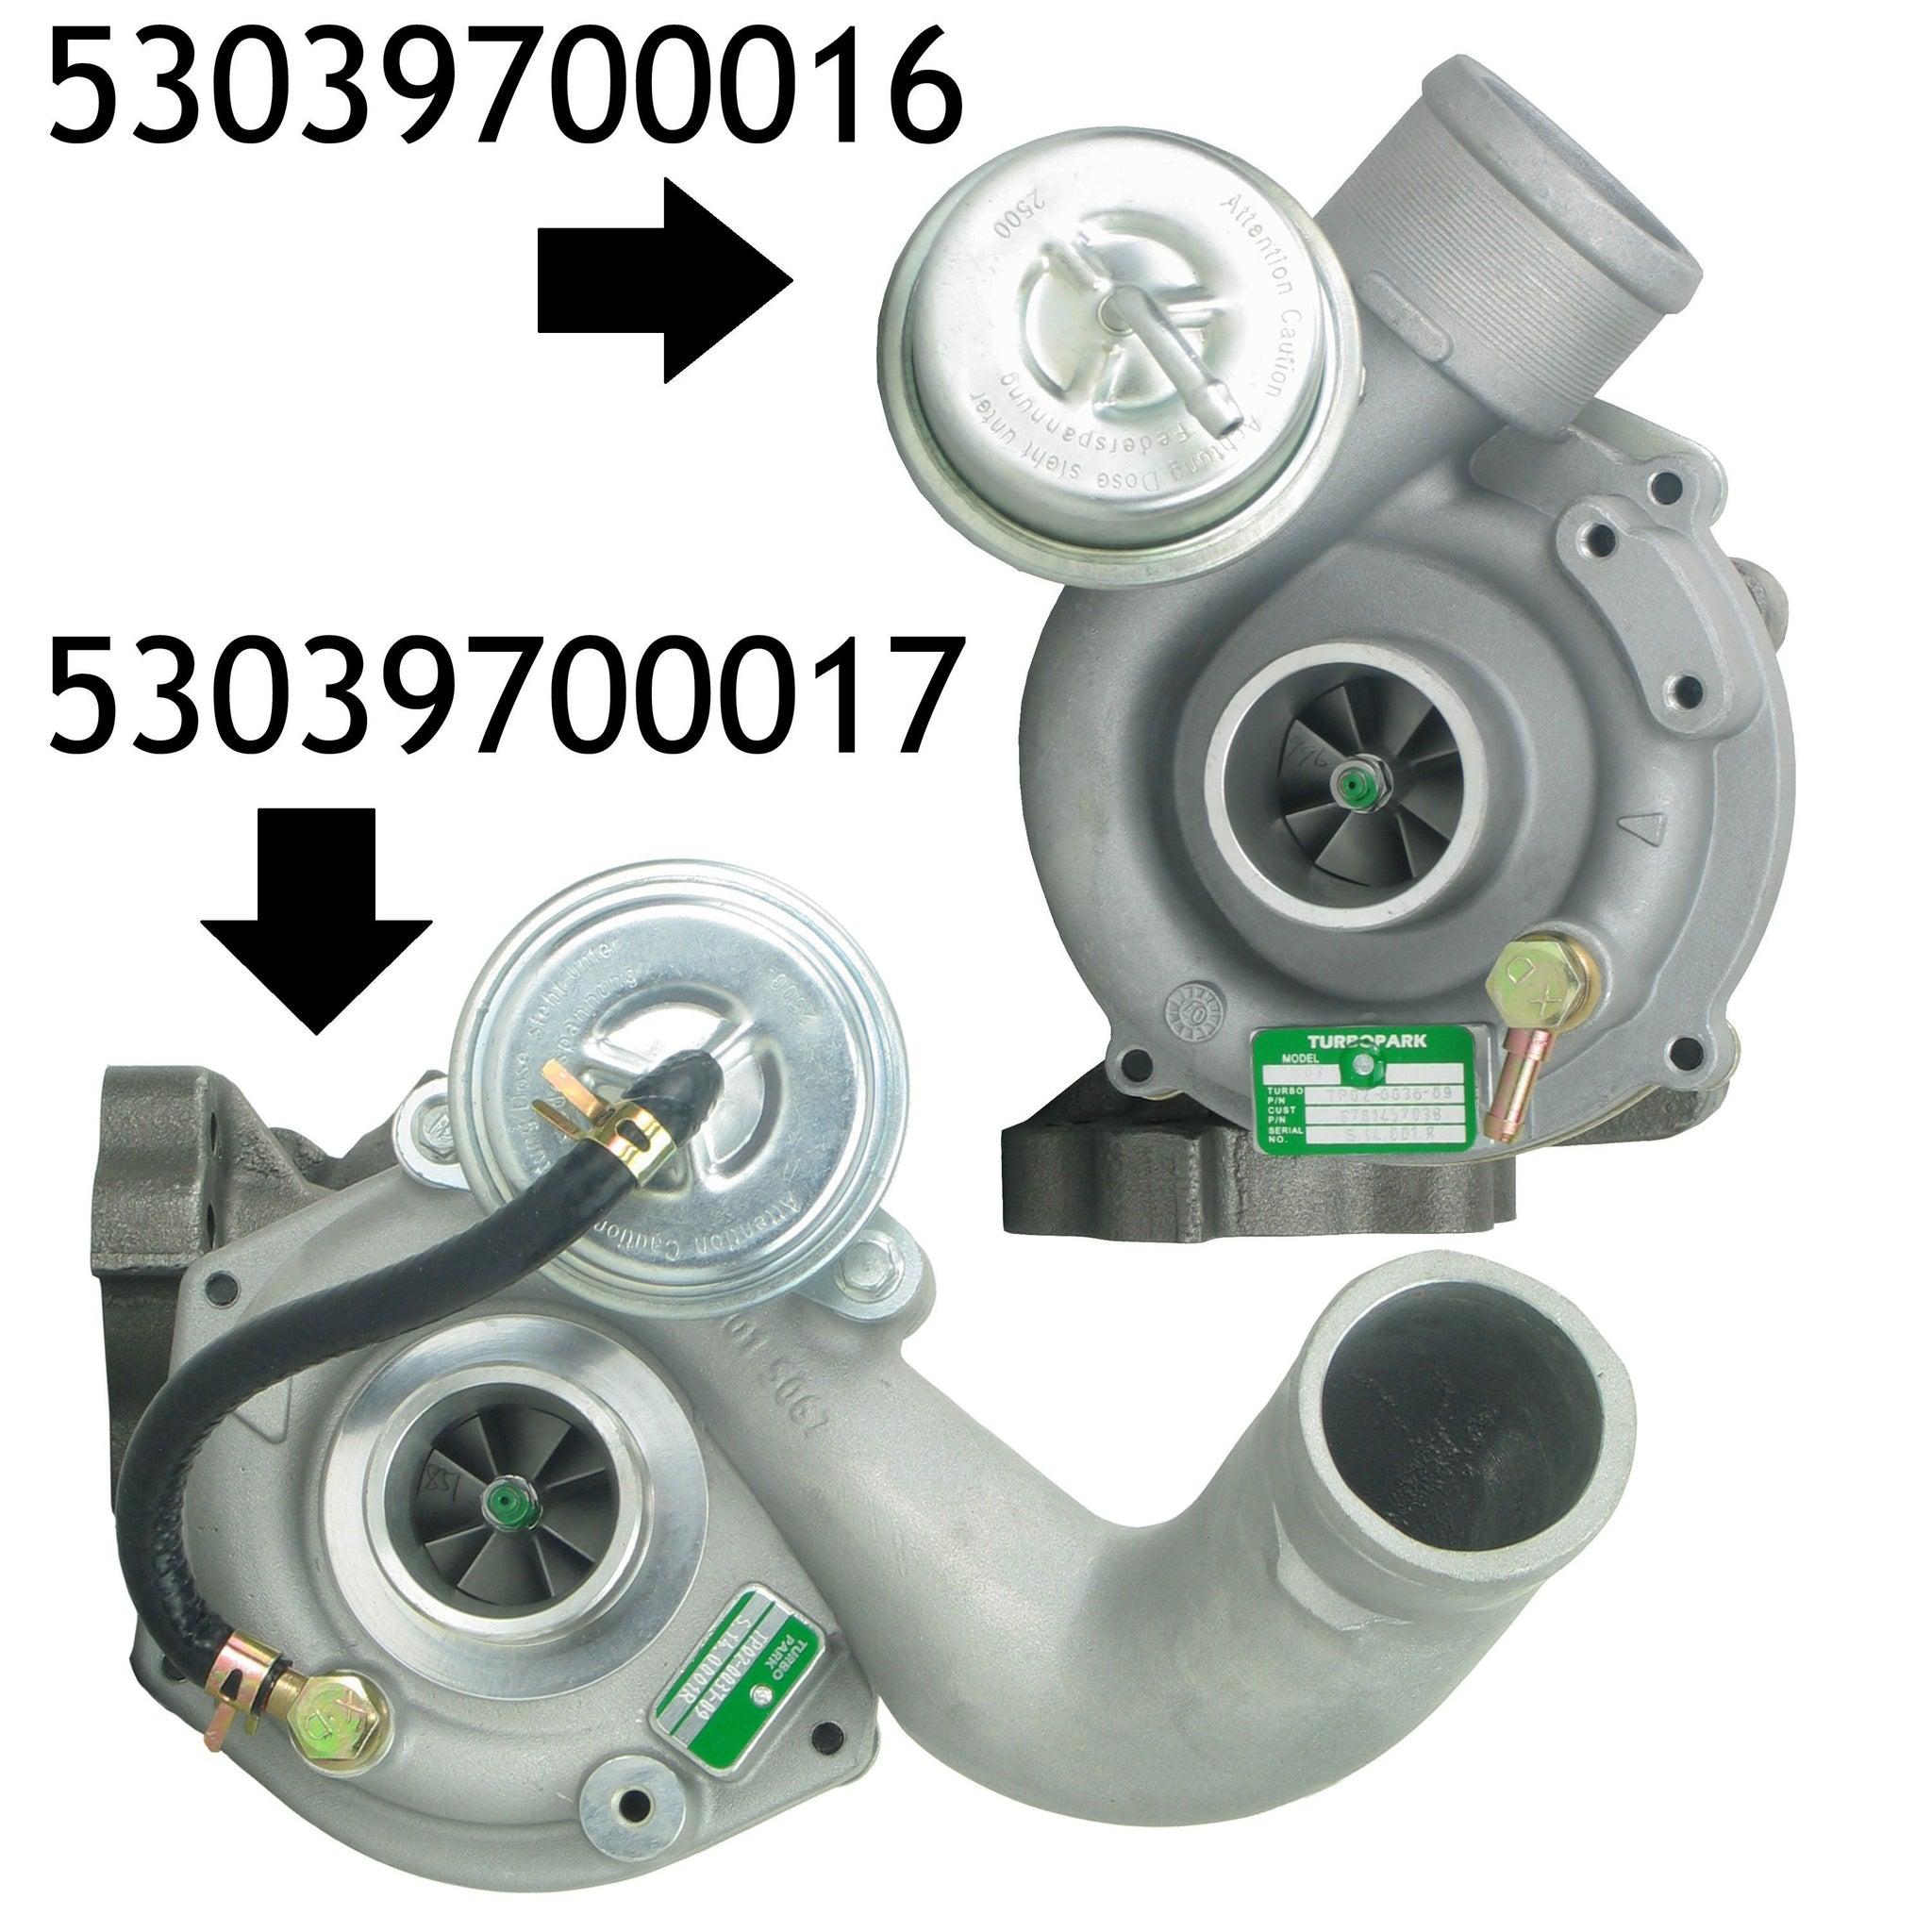 NEW Pair K03 Turbocharger Audi S4 A6 allroad AGB AJK ARE BES 53039700016-0017